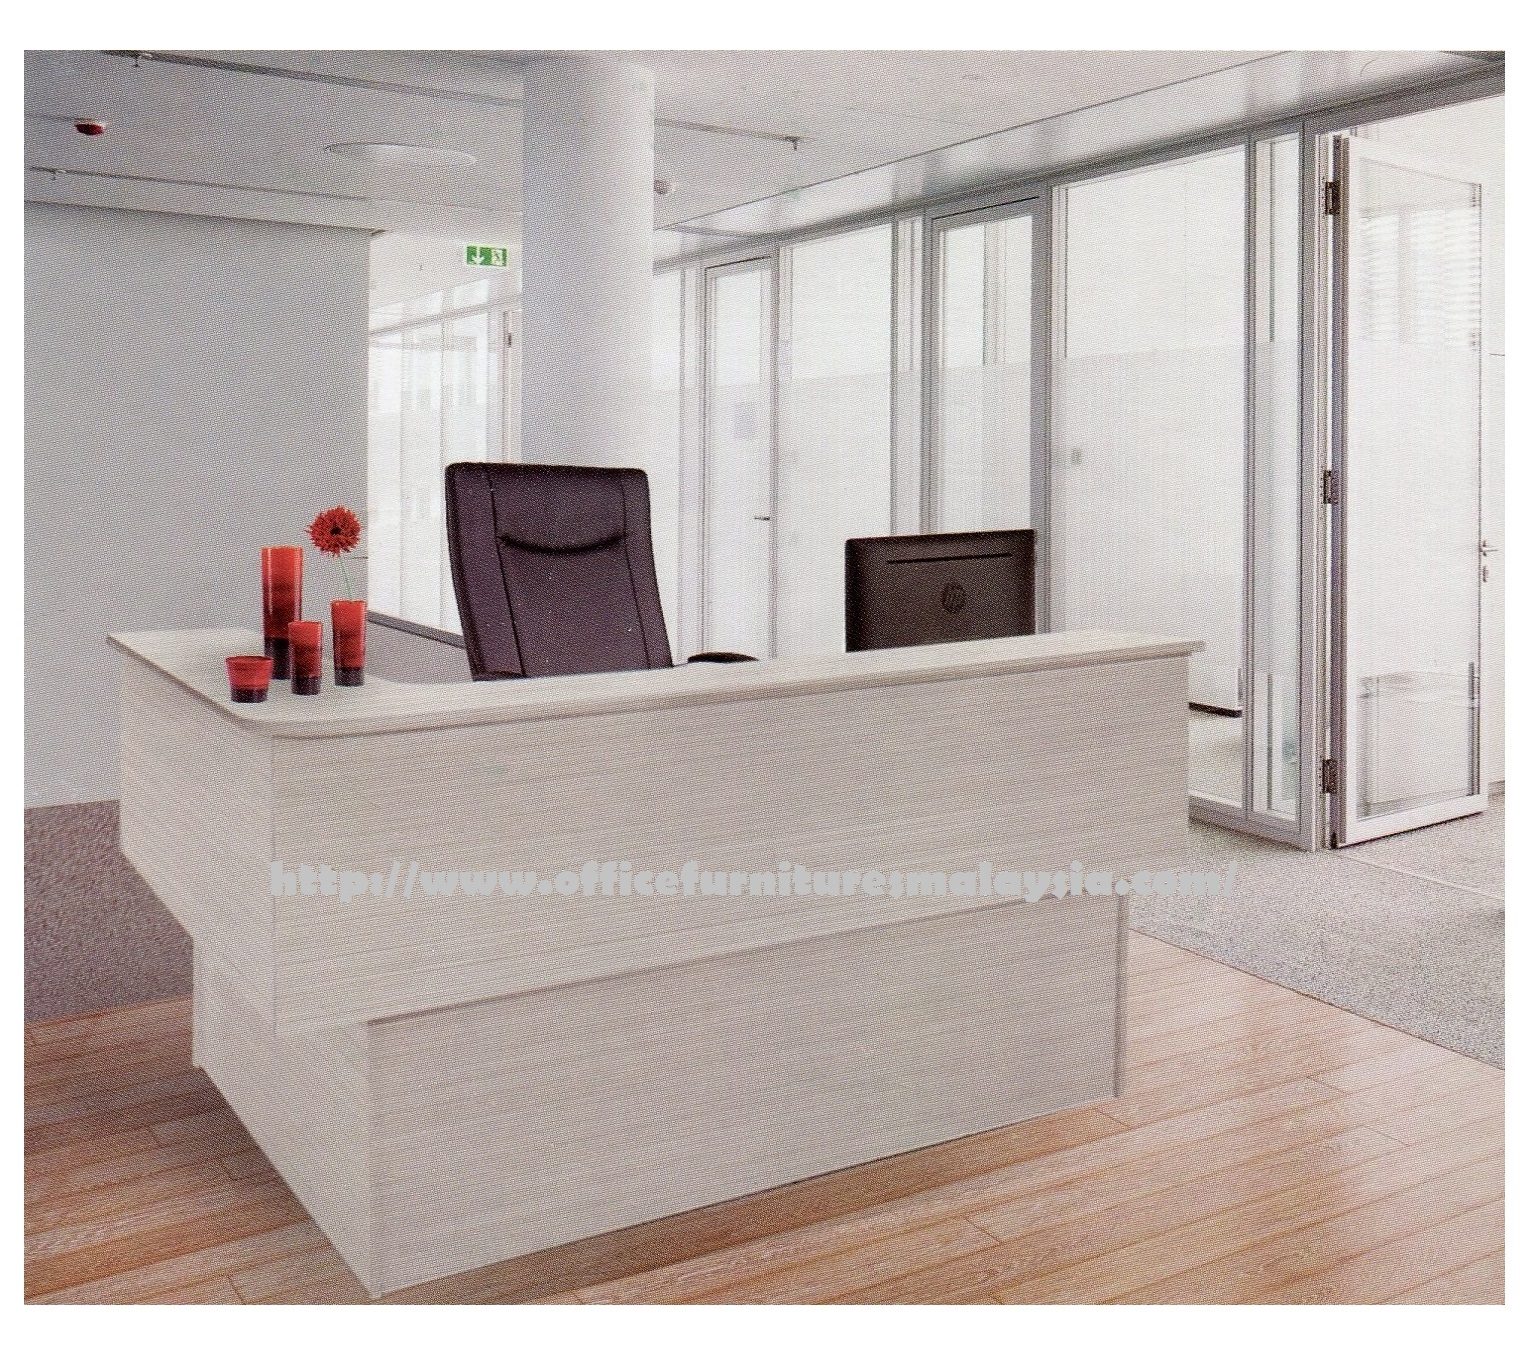 Office Reception Counter Table Desk Office Furnitures